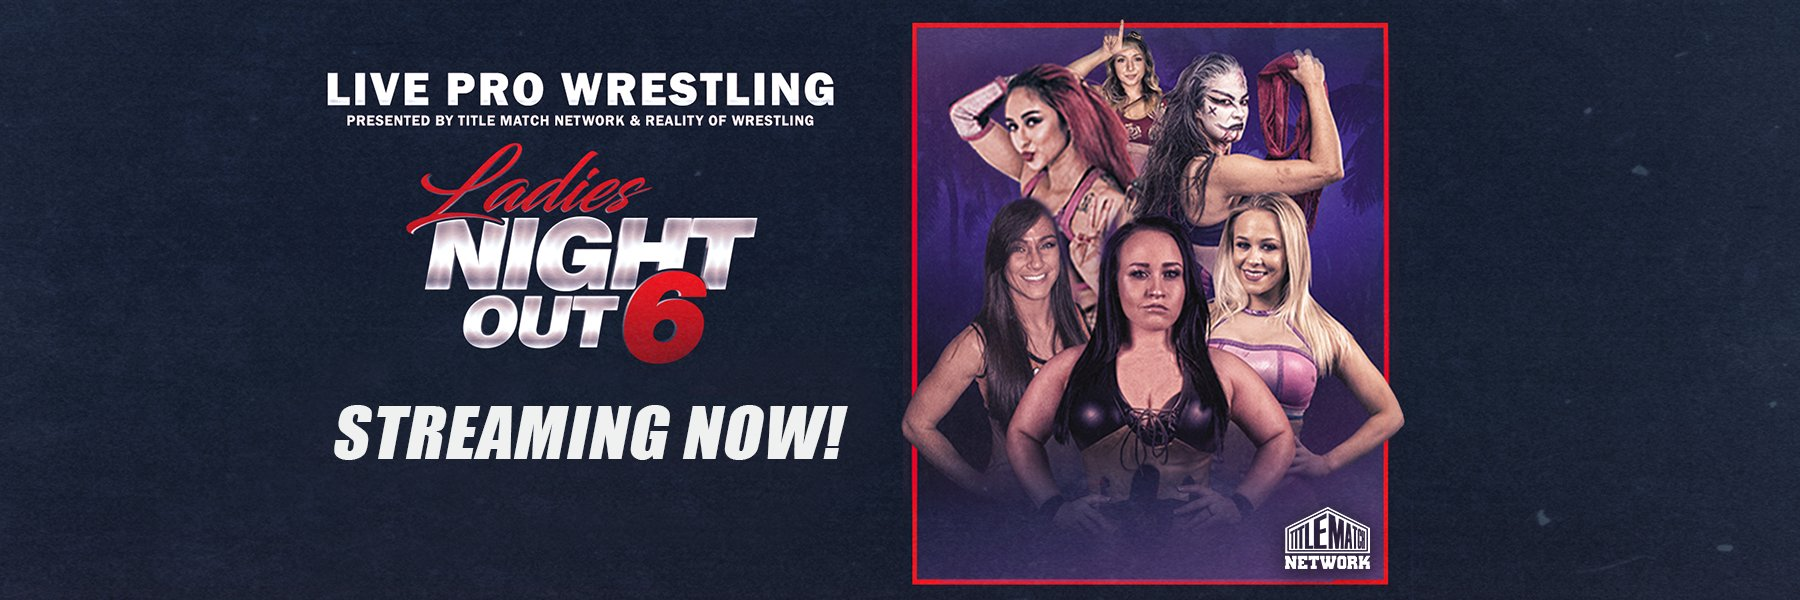 Ladies Night Out 6: Penelope Ford vs Jordynne Grace, Kylie Rae